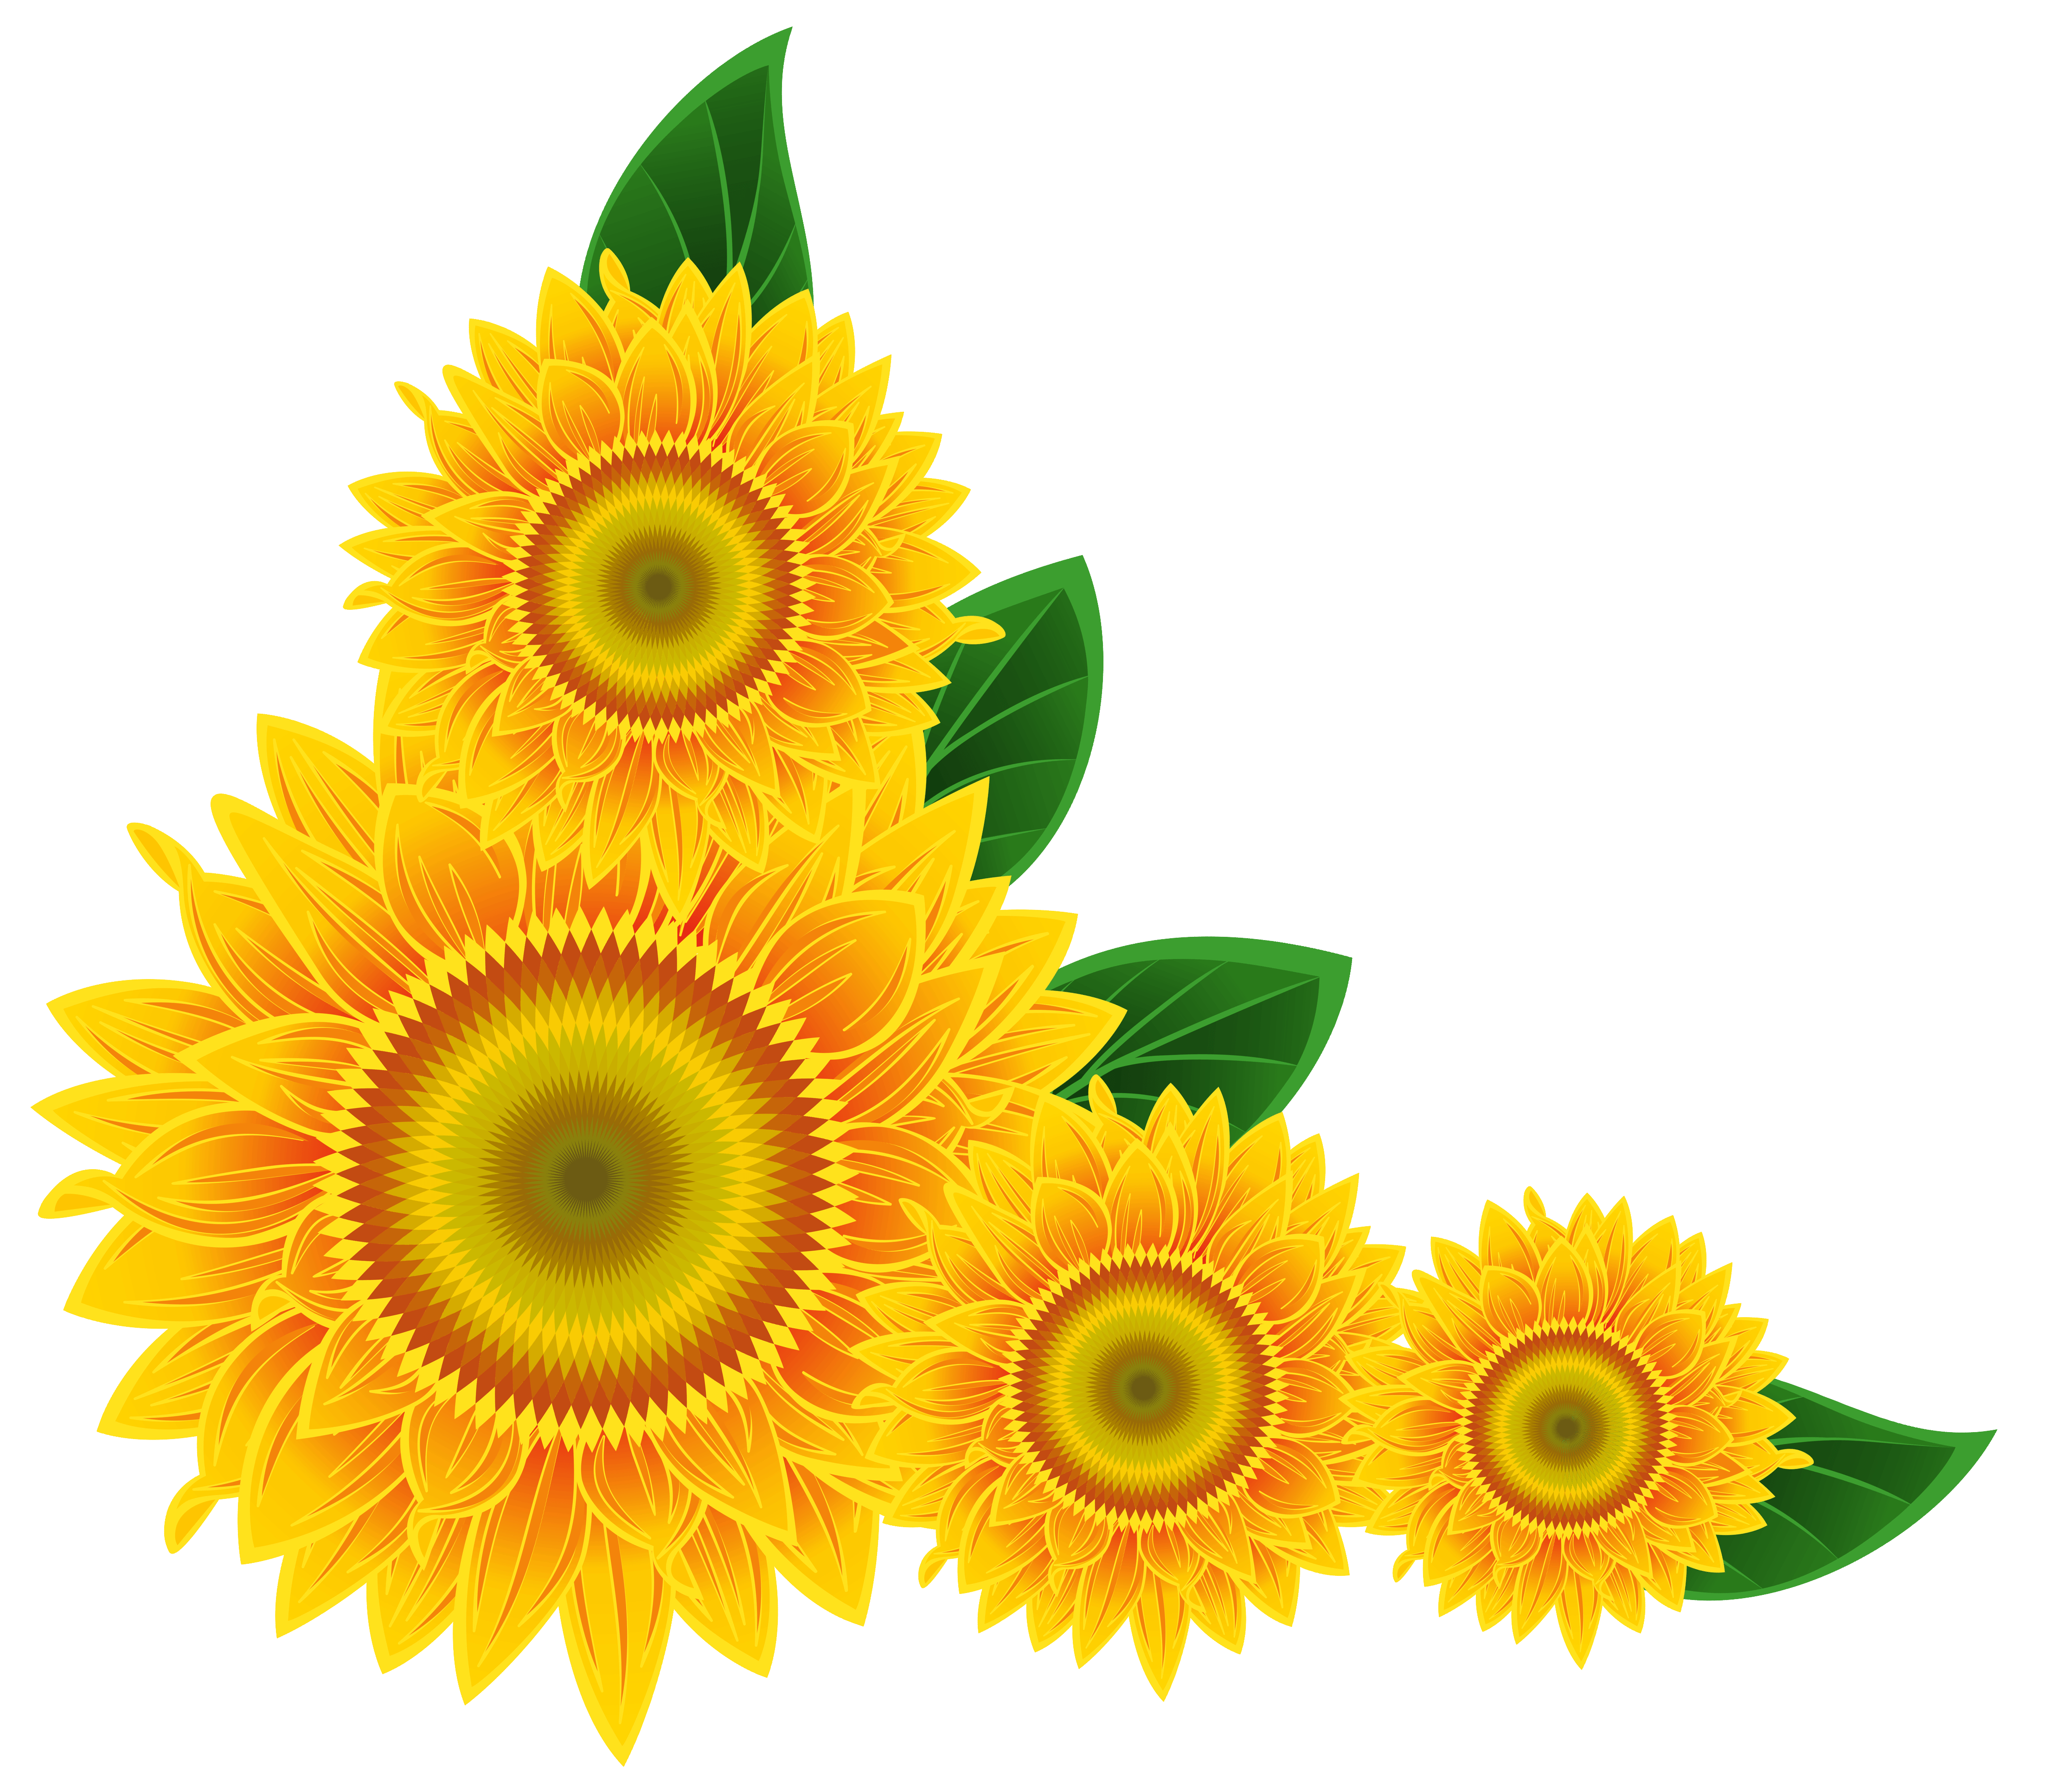 Sunflower  free sunflower school cliparts 2